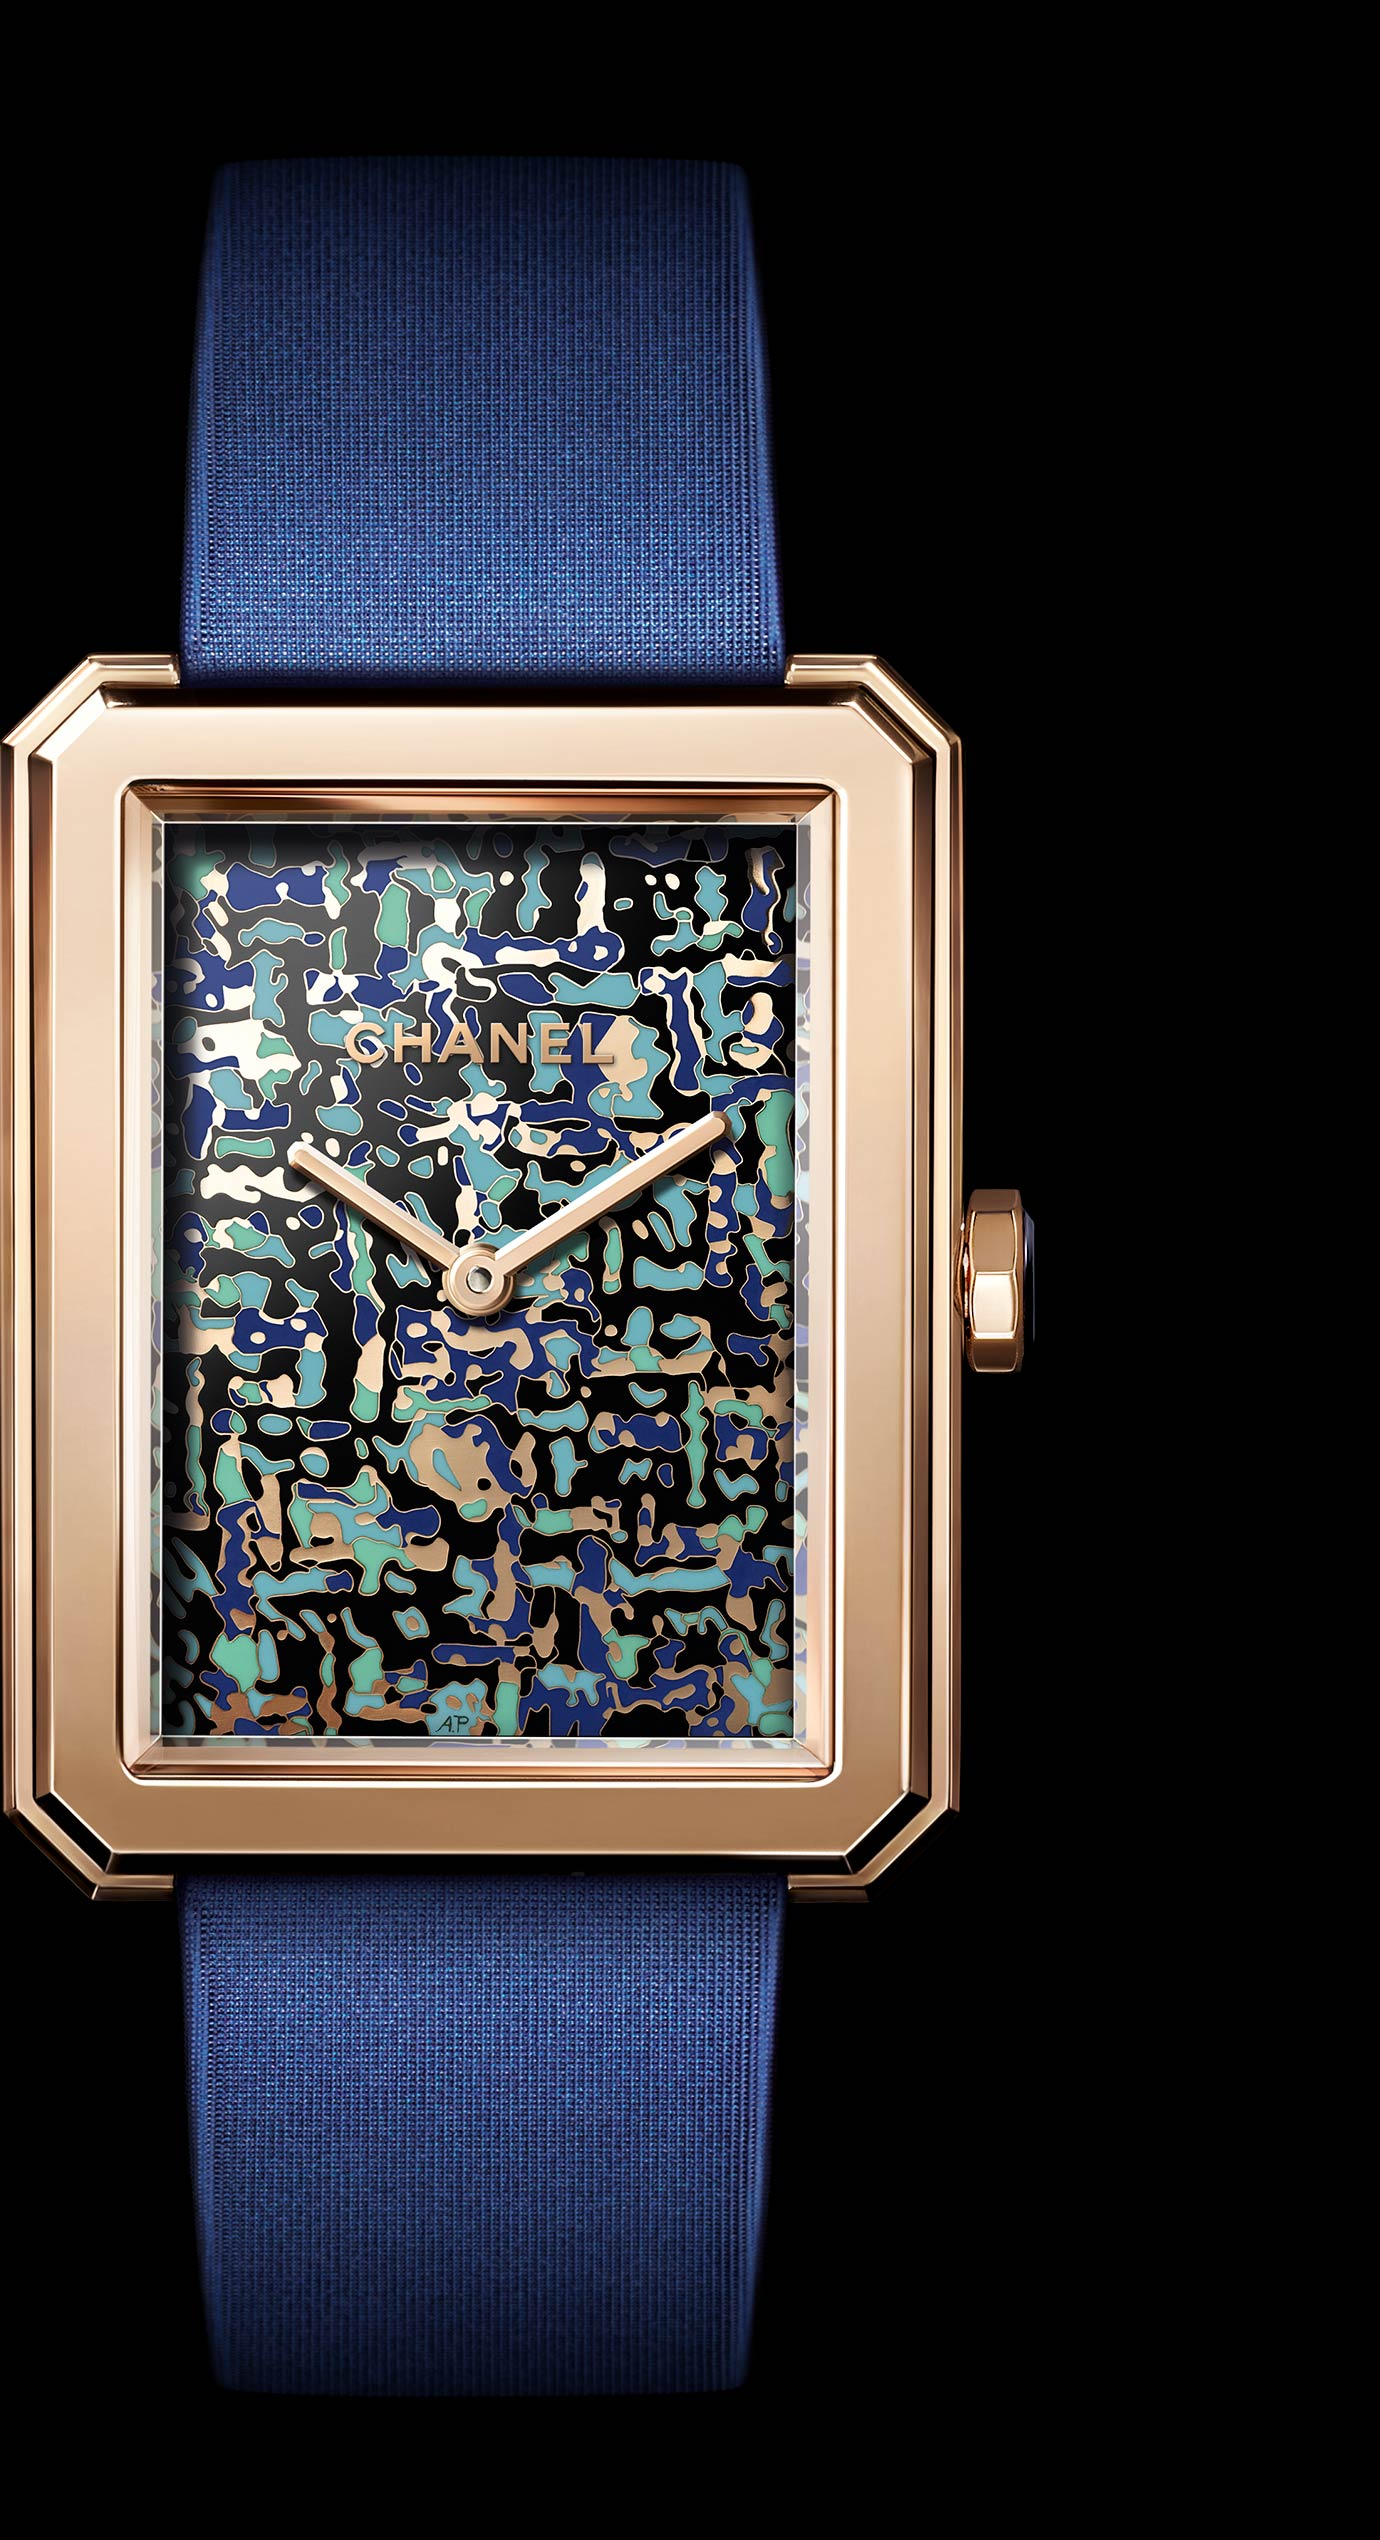 BOY FRIEND TWEED ART WATCH IN 18K BEIGE GOLD - Enlarged view